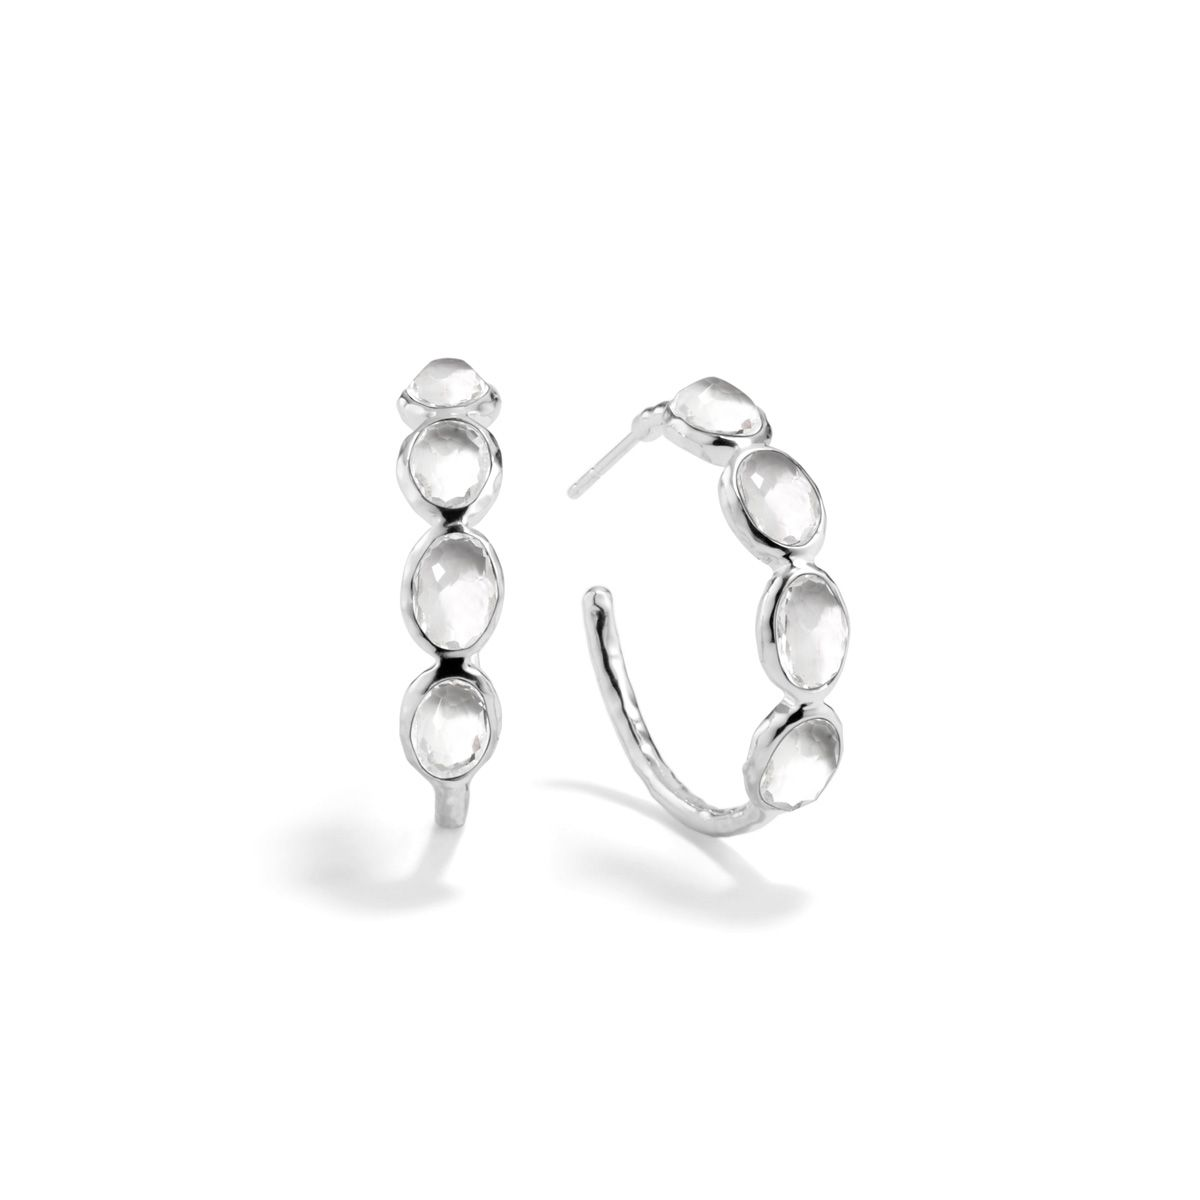 efc3ced0c IPPOLITA Rock Candy Small Hoop Earrings in Sterling Silver, Clear Quartz,  The smaller version of our Rock Candy ? hoop, this spirited earring  features ...